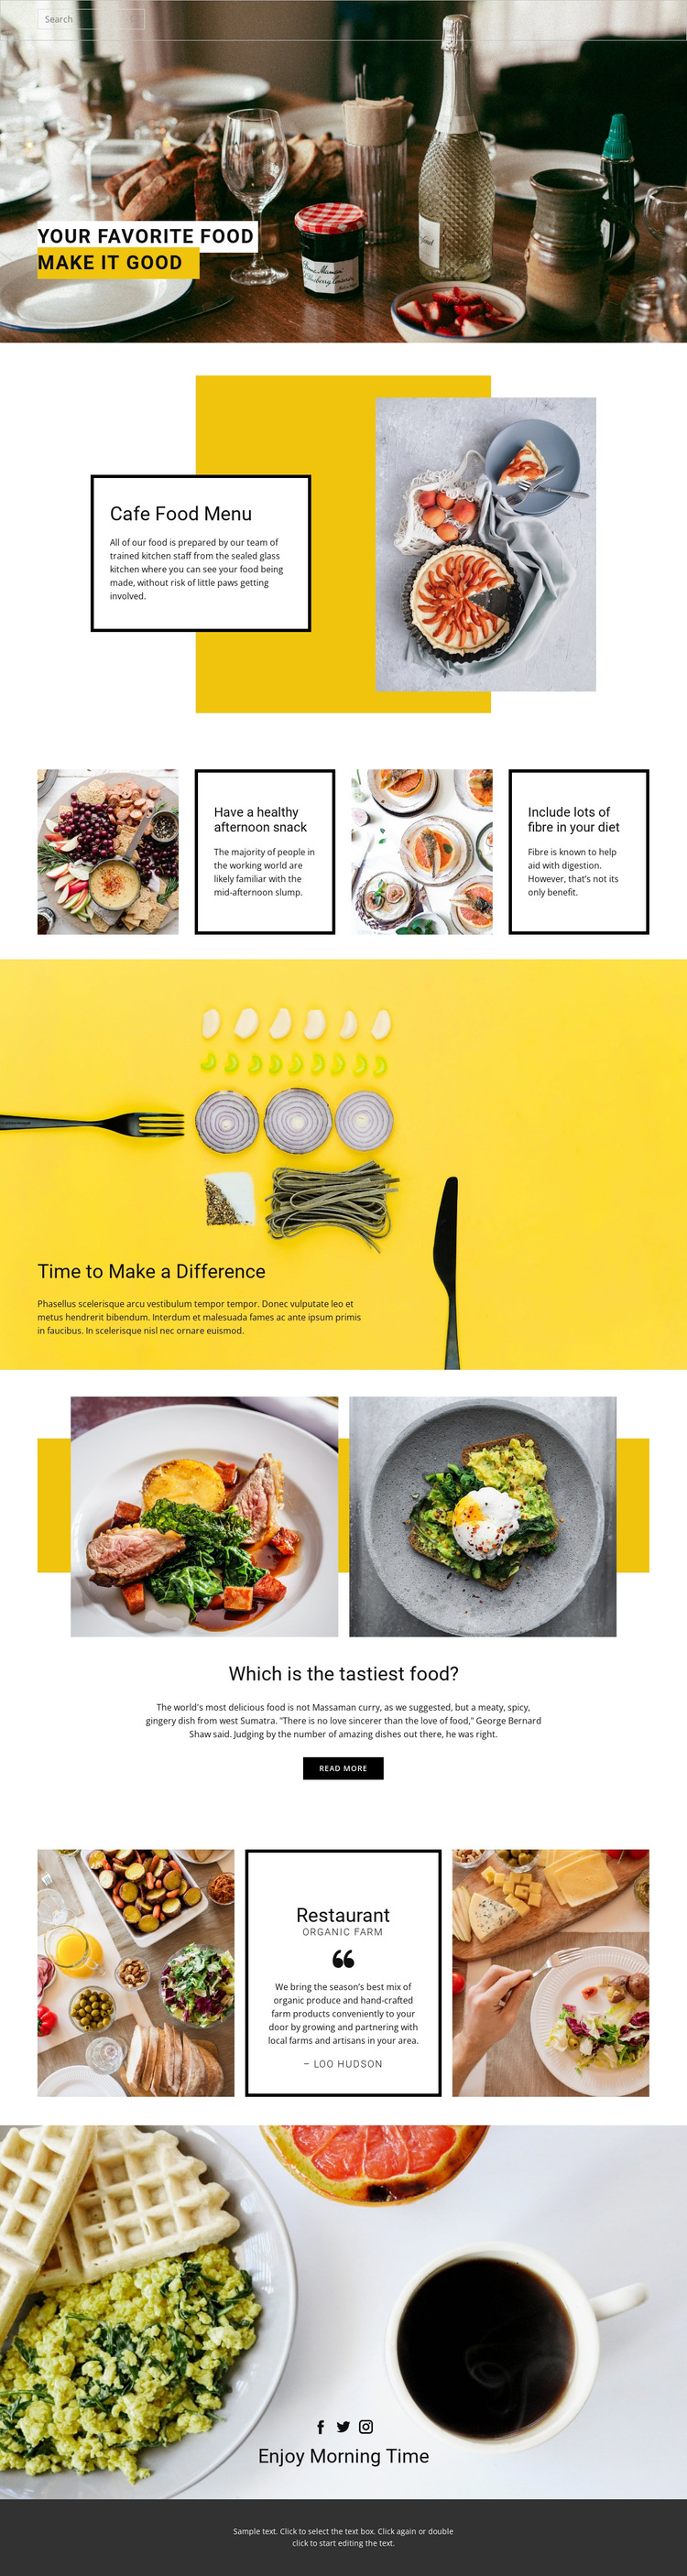 Cook your favorite food HTML5 Template